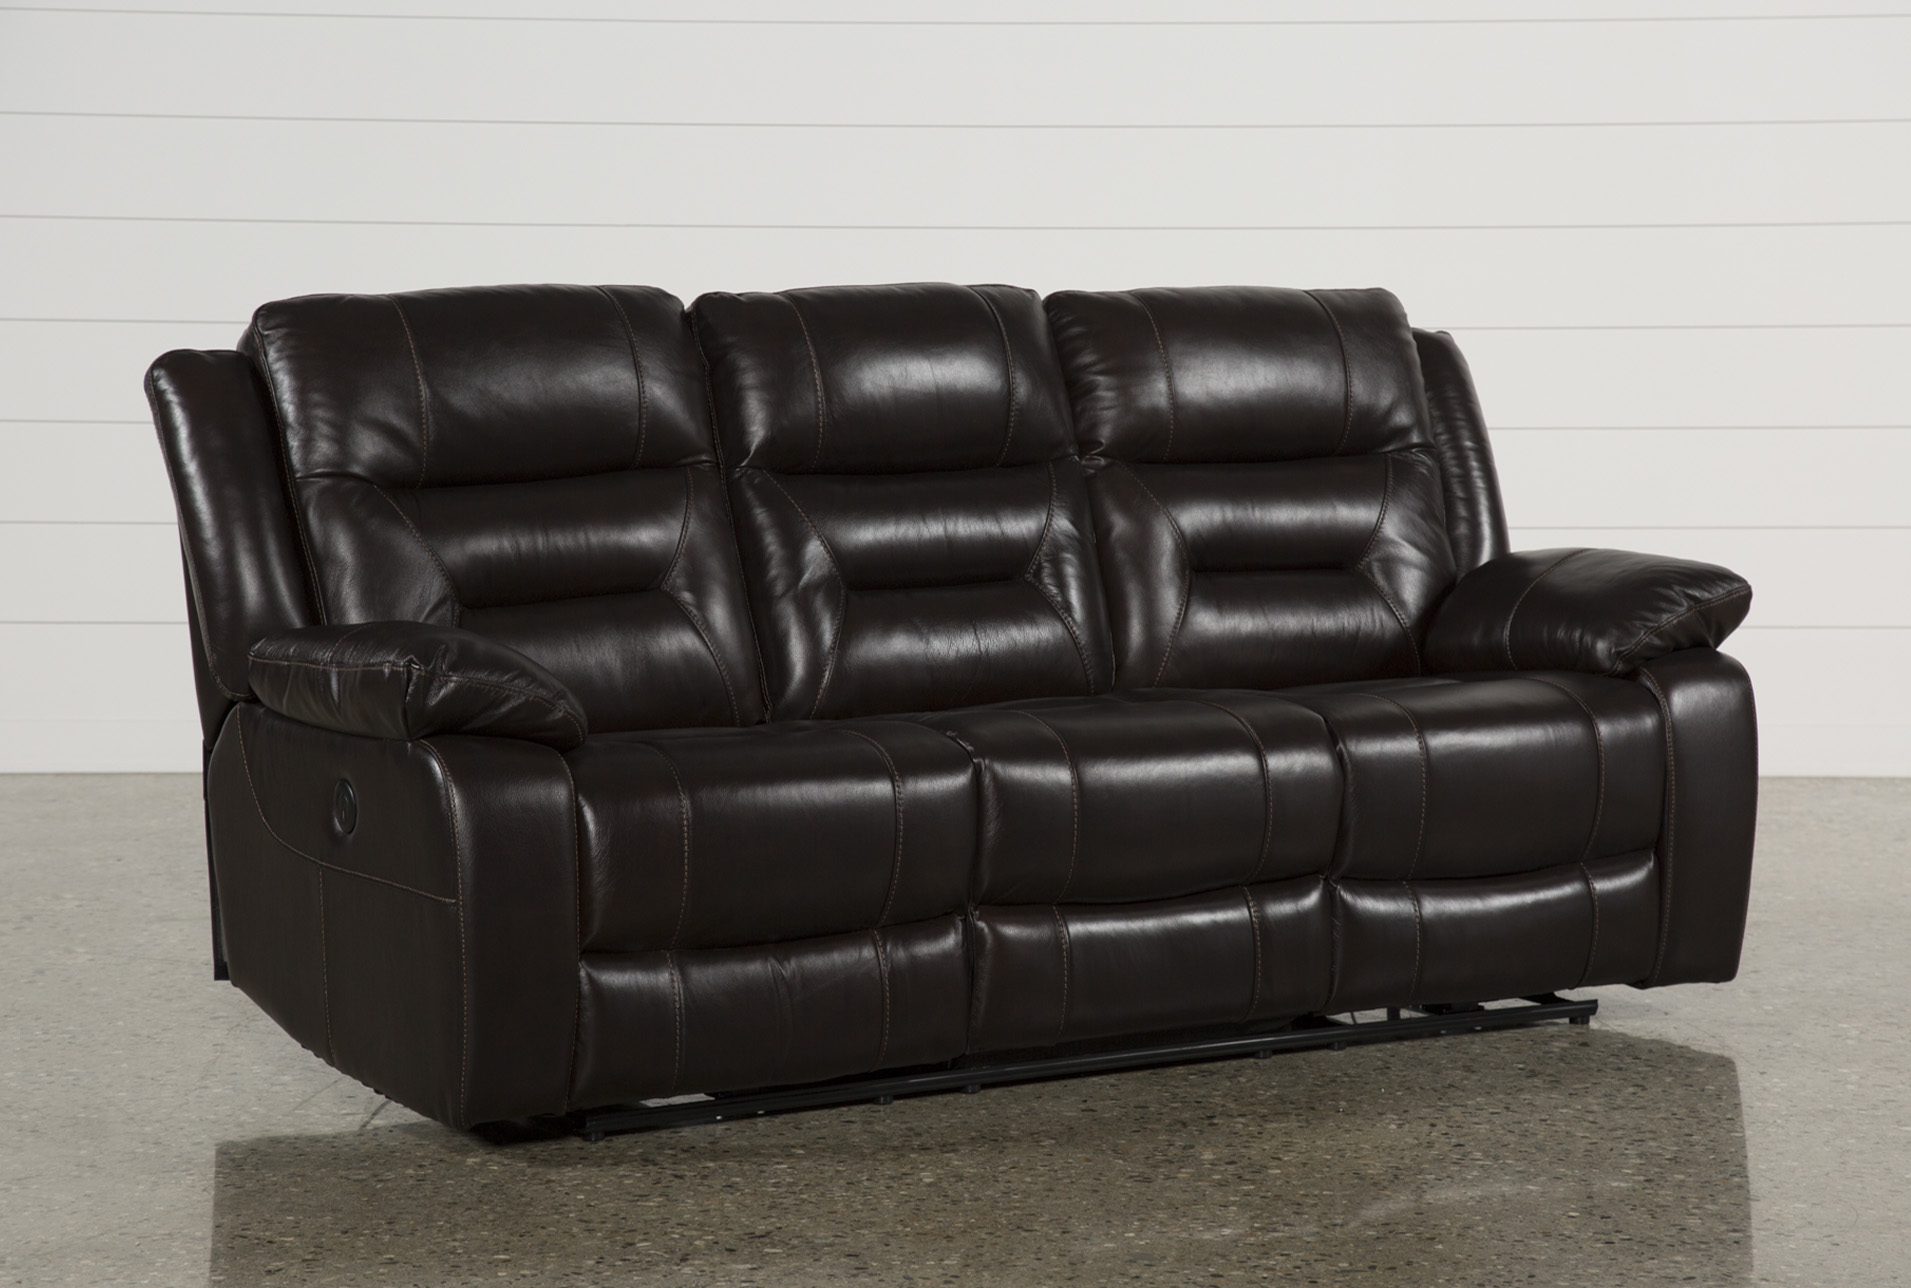 Wayne II Leather Power Reclining Sofa W/Usb   360